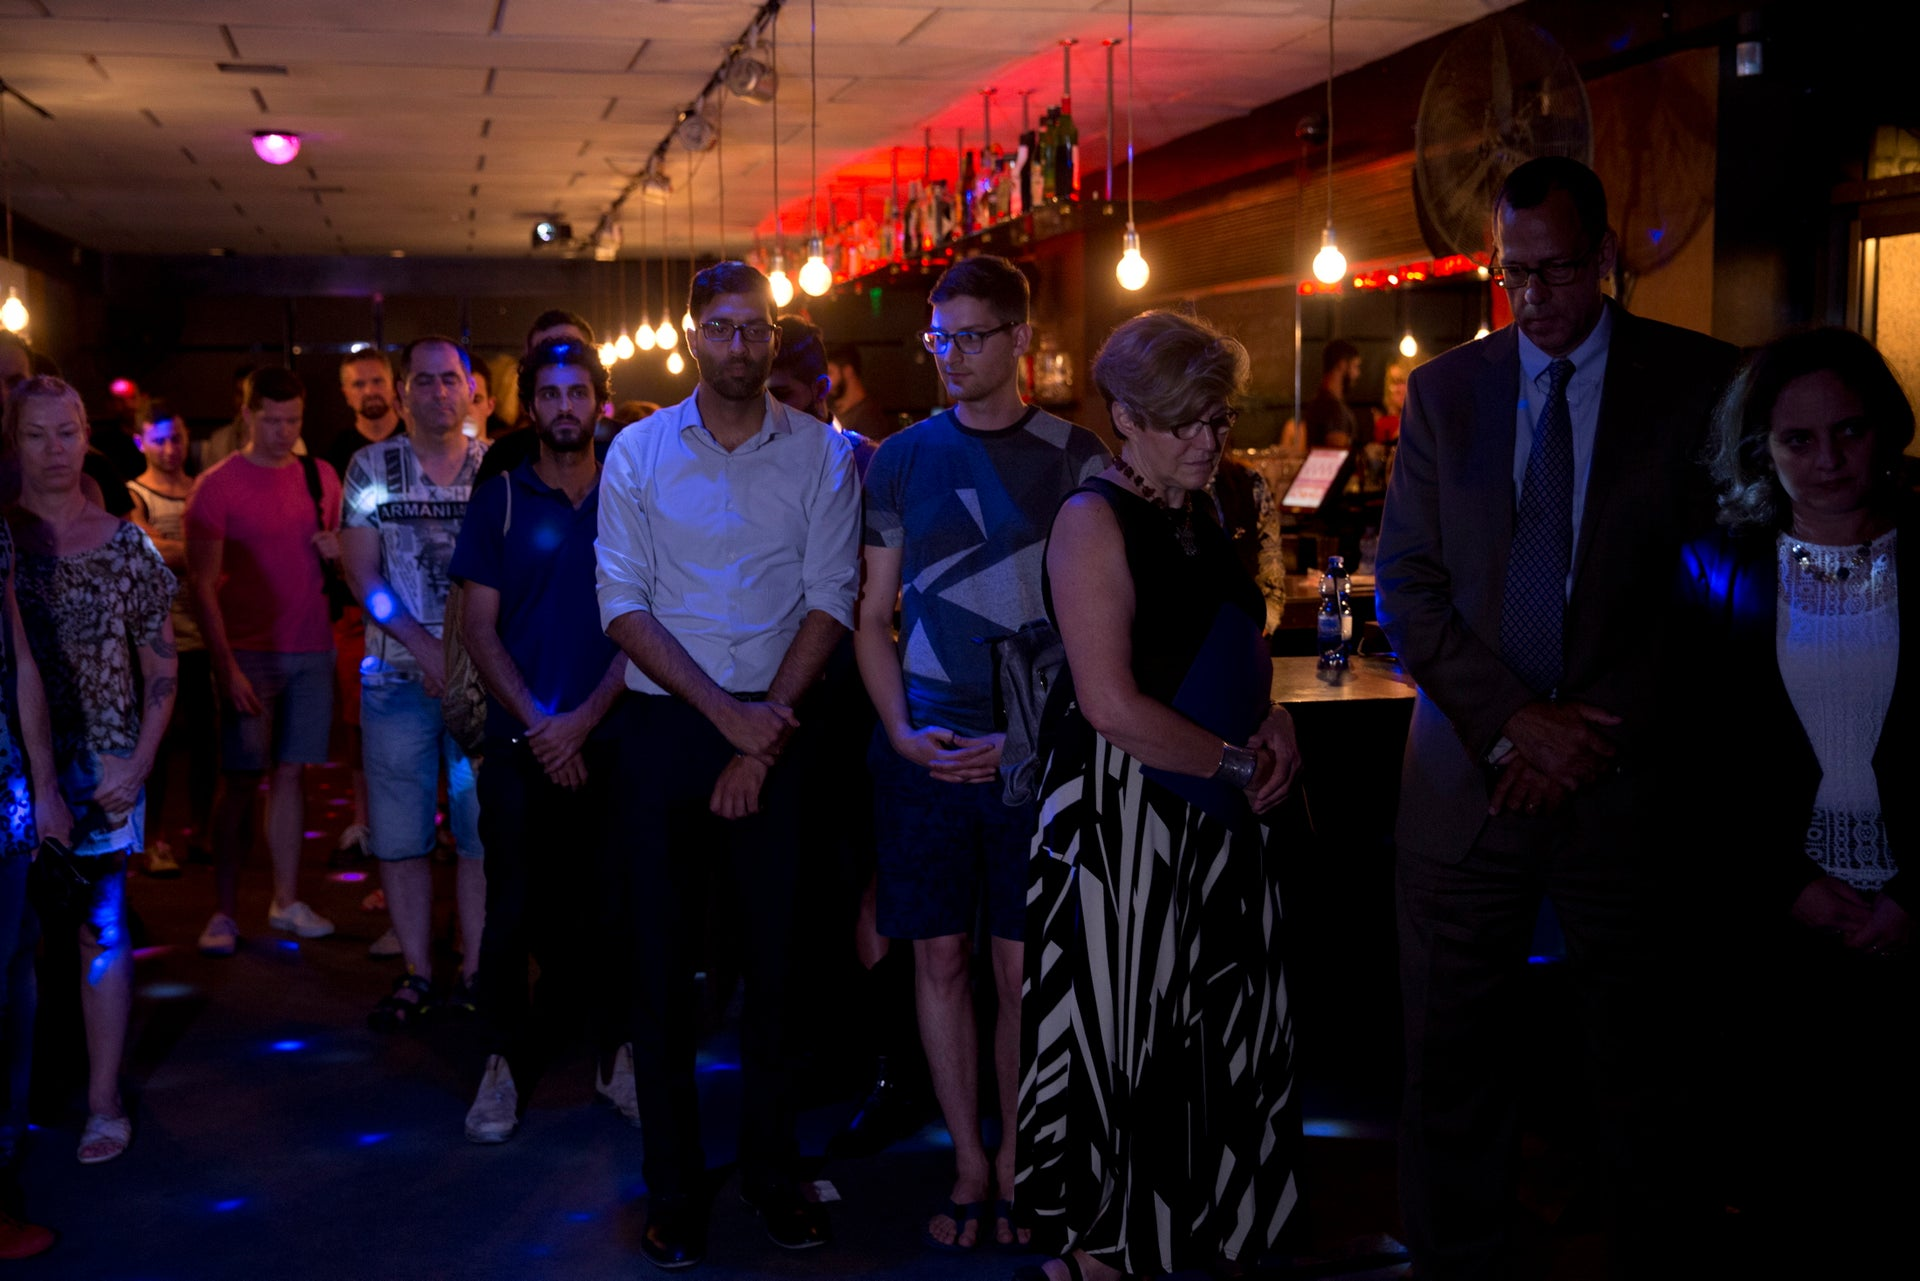 Partygoers at the Evita club have a moment of silence in honor of the victims of the mass shooting at a gay club in Orlando, Tel Aviv, Israel, June 14, 2016.